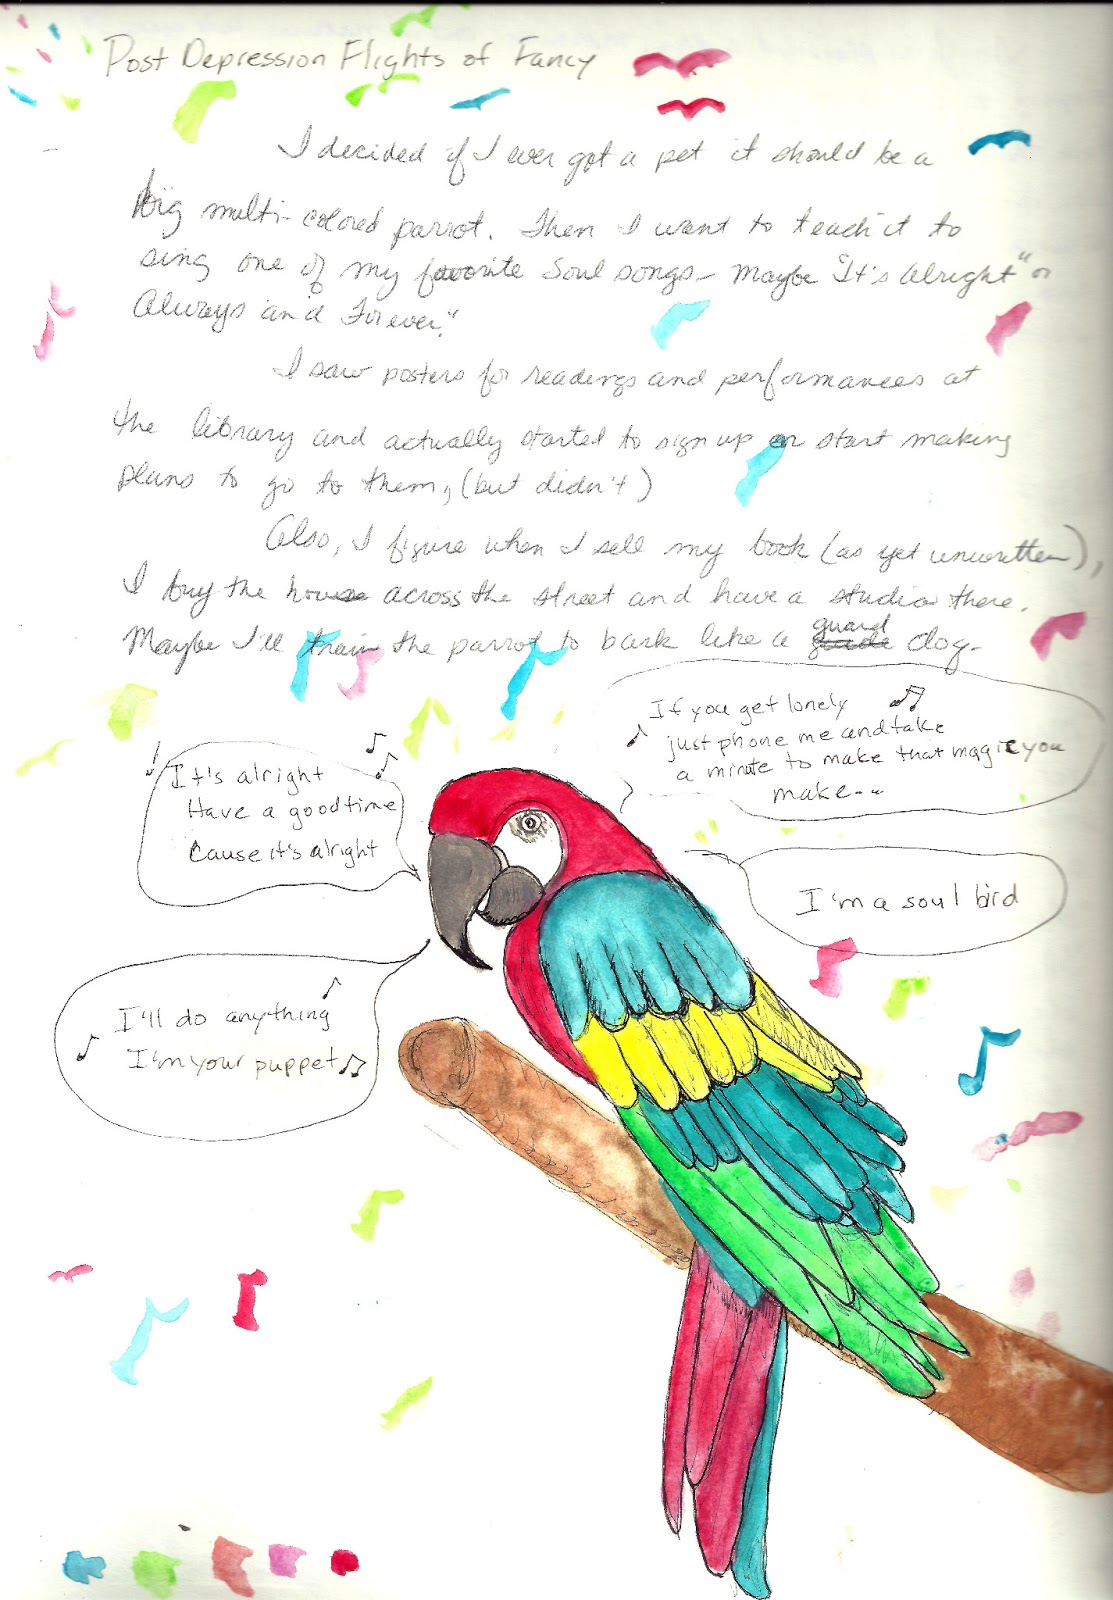 essay on my favourite bird parrot in english